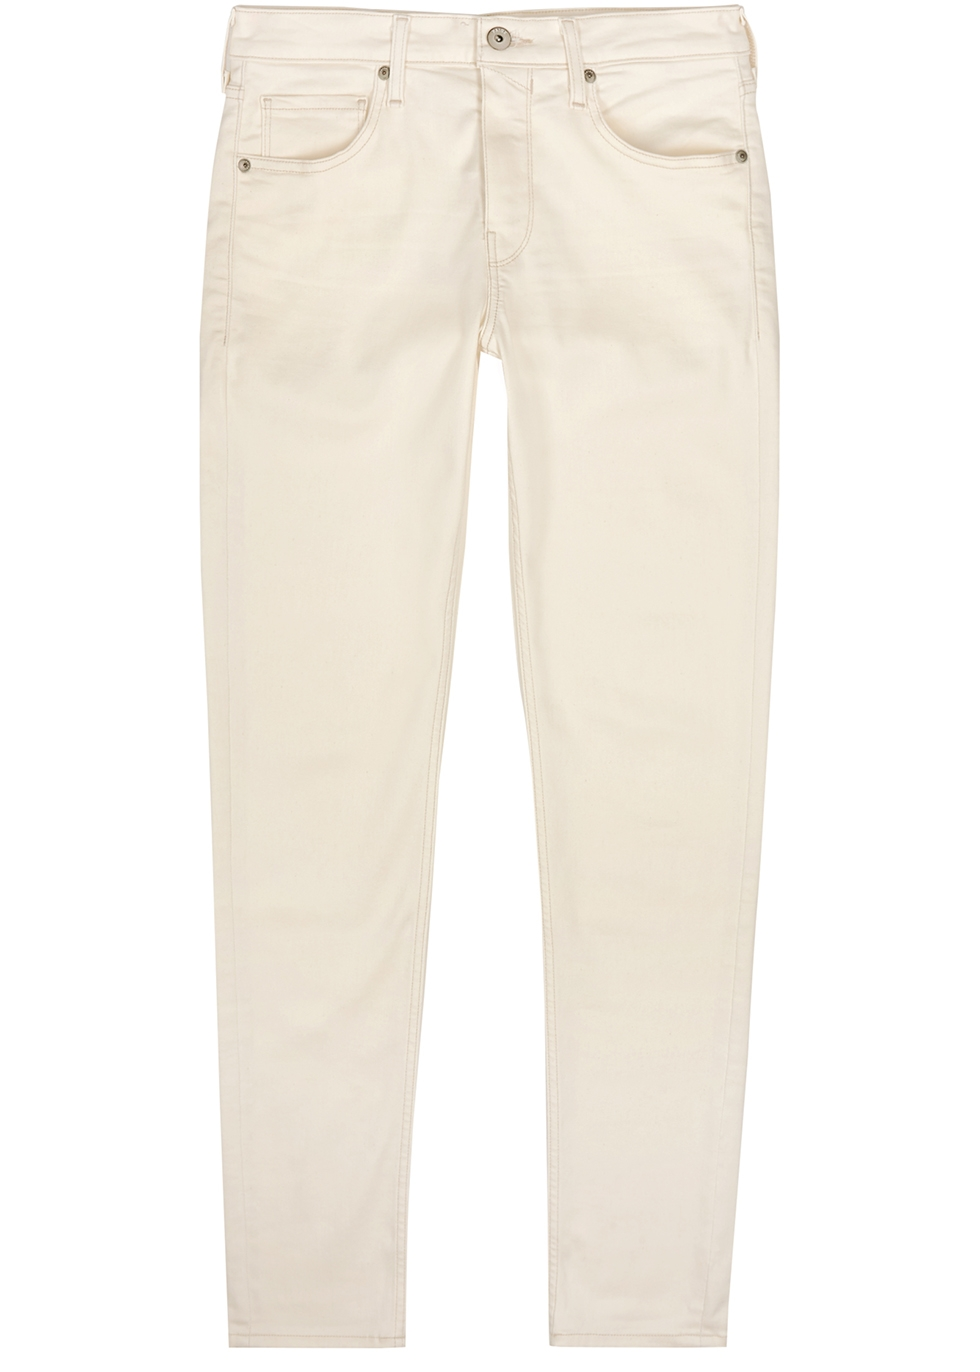 Croft Transcend off-white skinny jeans